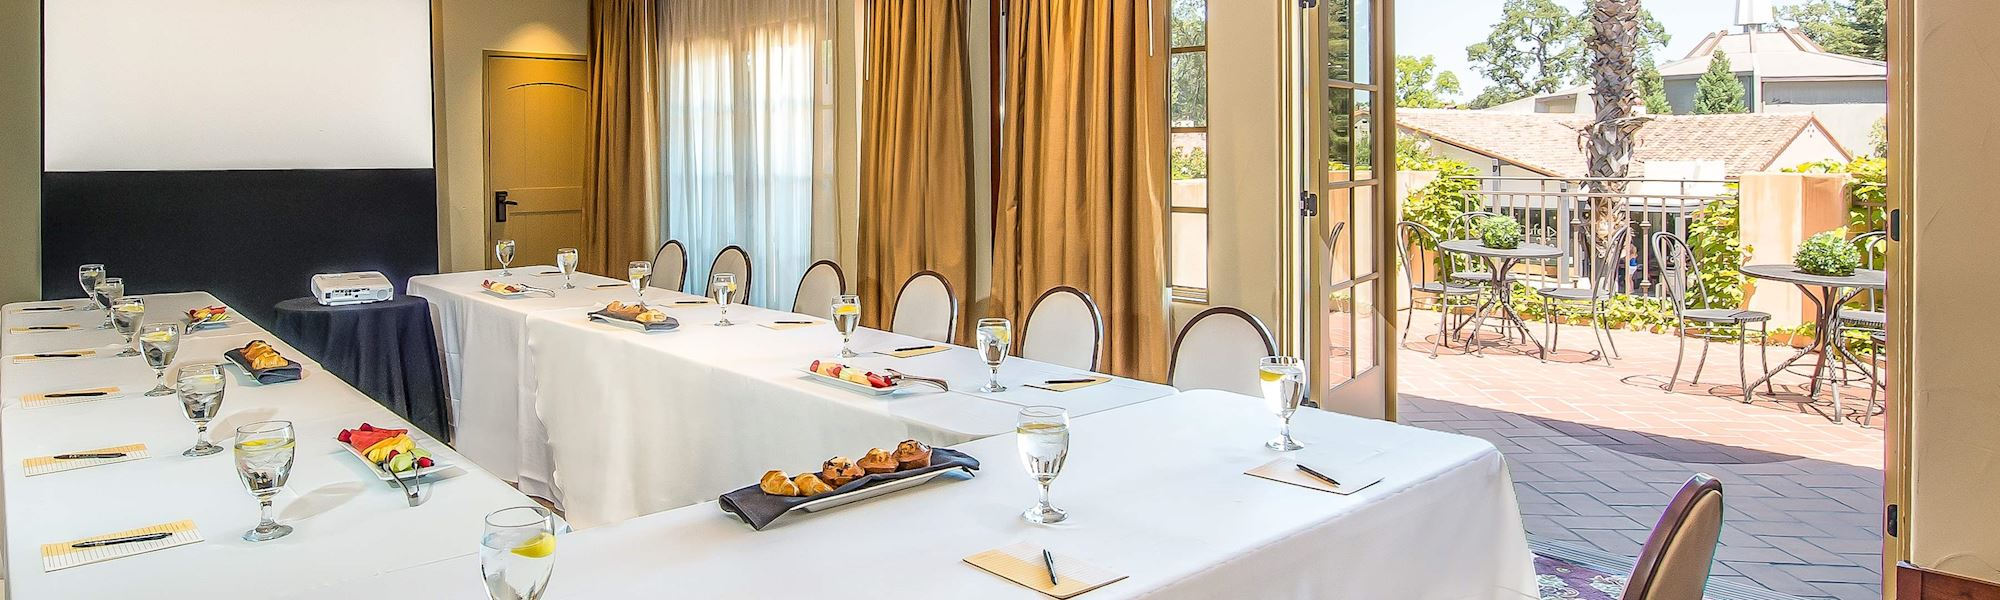 Meetings Facilities at Hotel Los Gatos - A Greystone Hotel